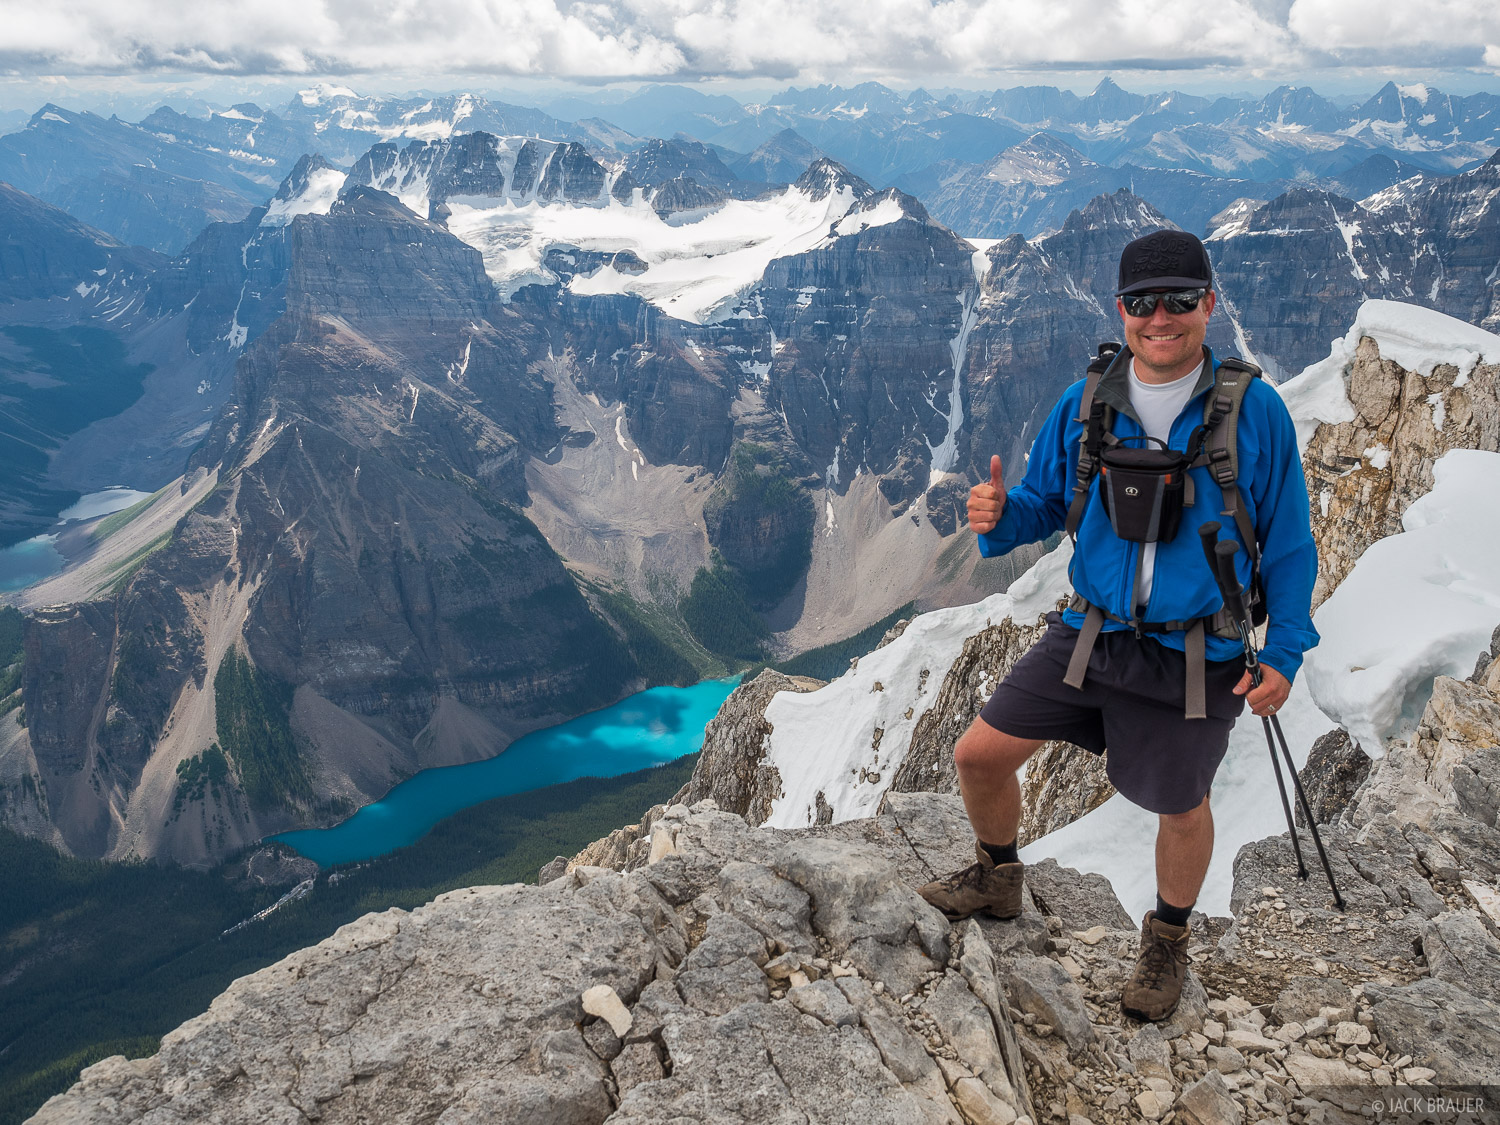 Here I am, stoked to finally reach the summit of Mount Temple after a 5,344 vertical foot hike and scramble from Moraine Lake...